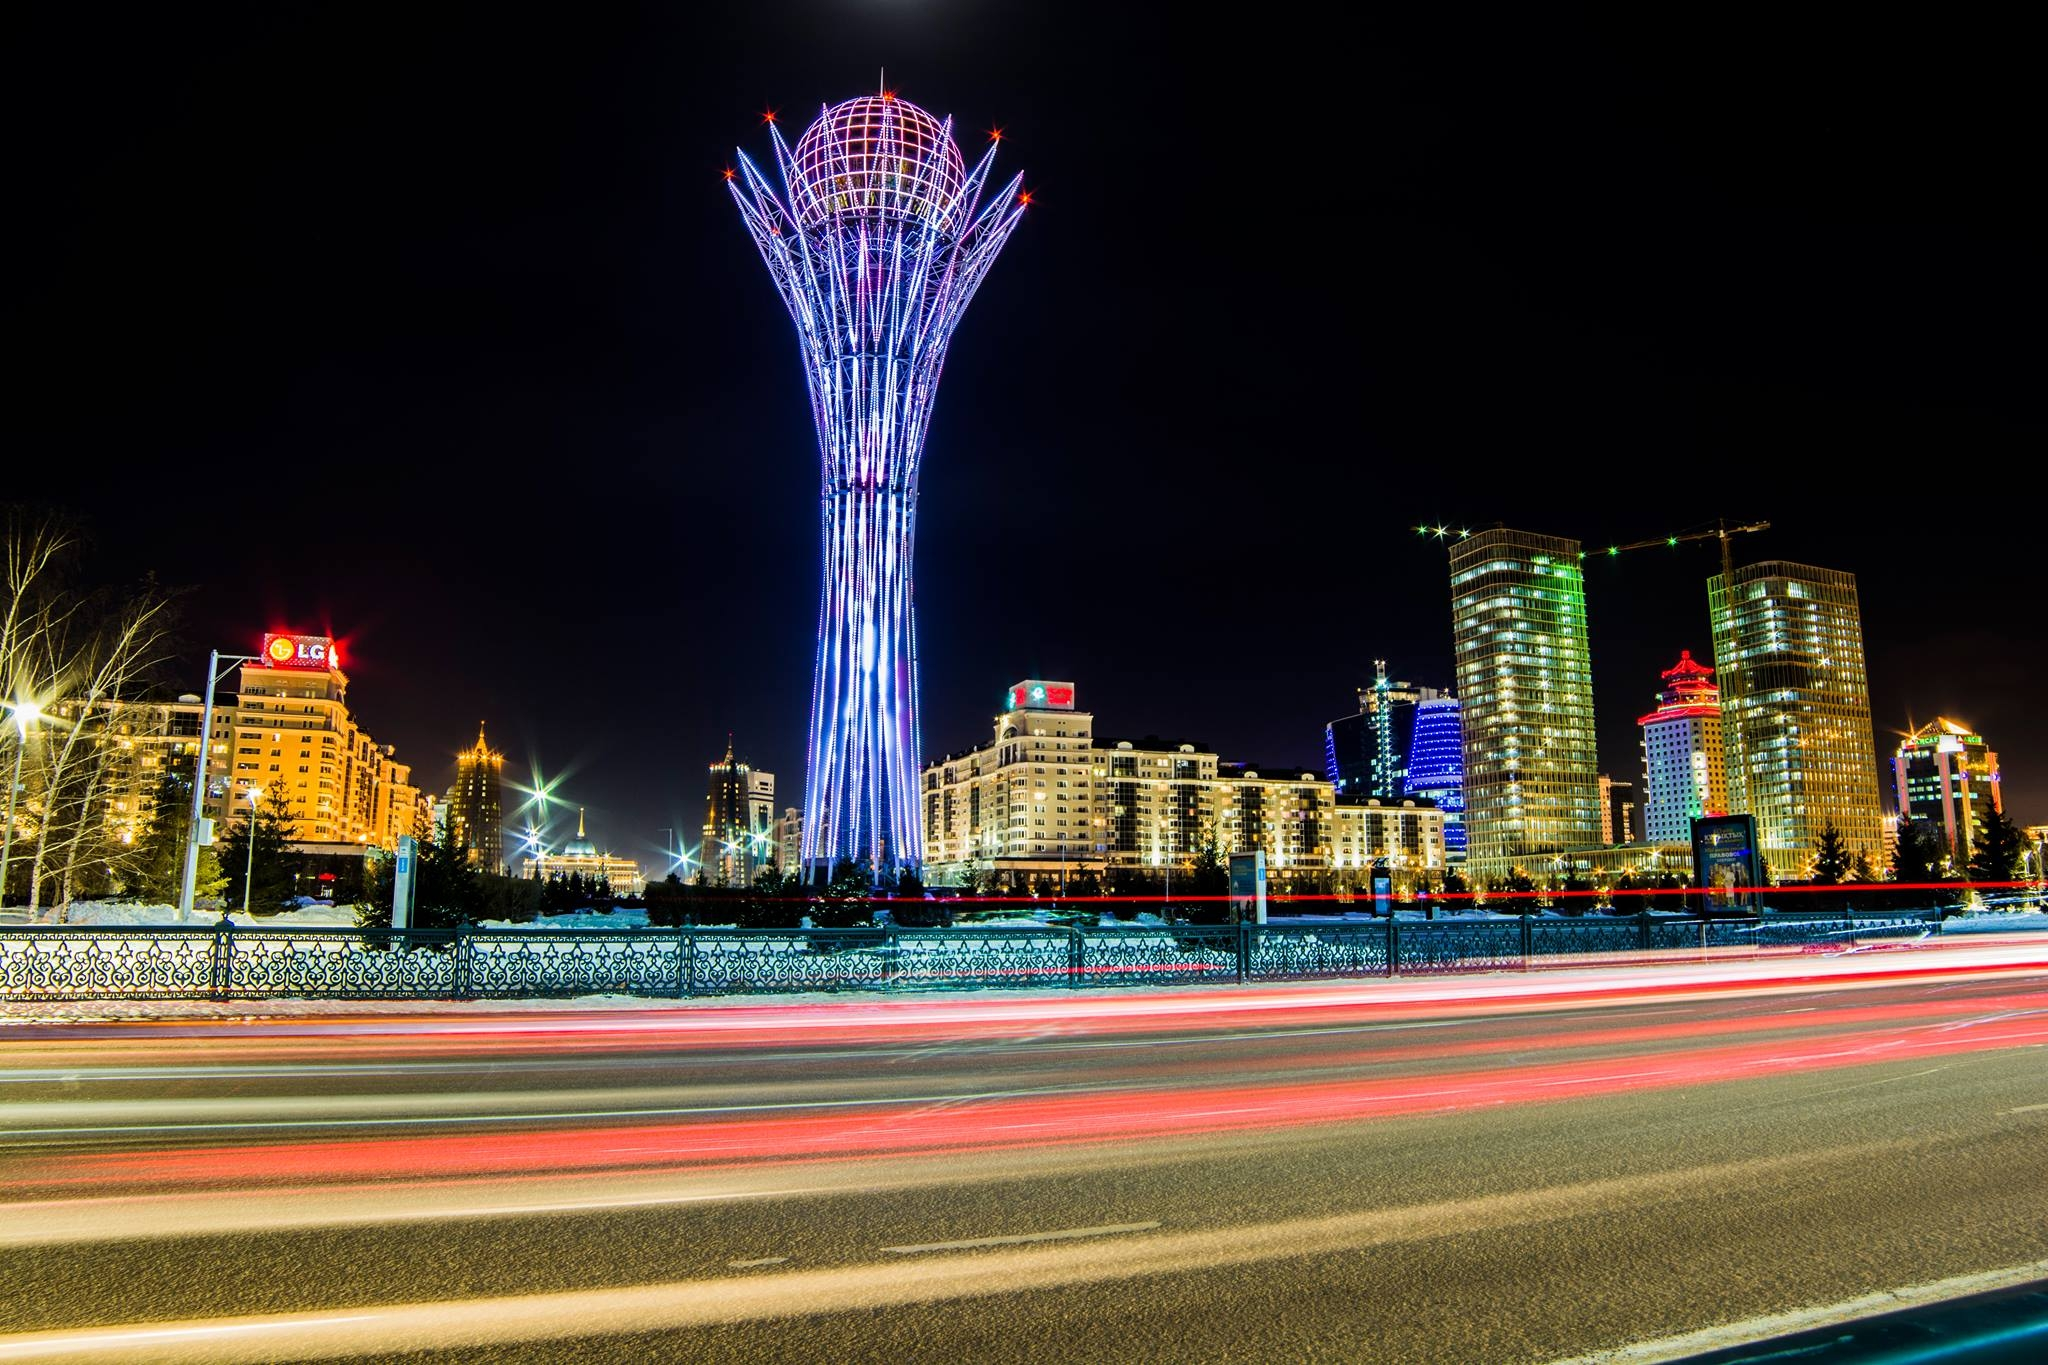 Bayterek Tower - Astana, Kazakhstan. (Photo: Pharohl Charles)